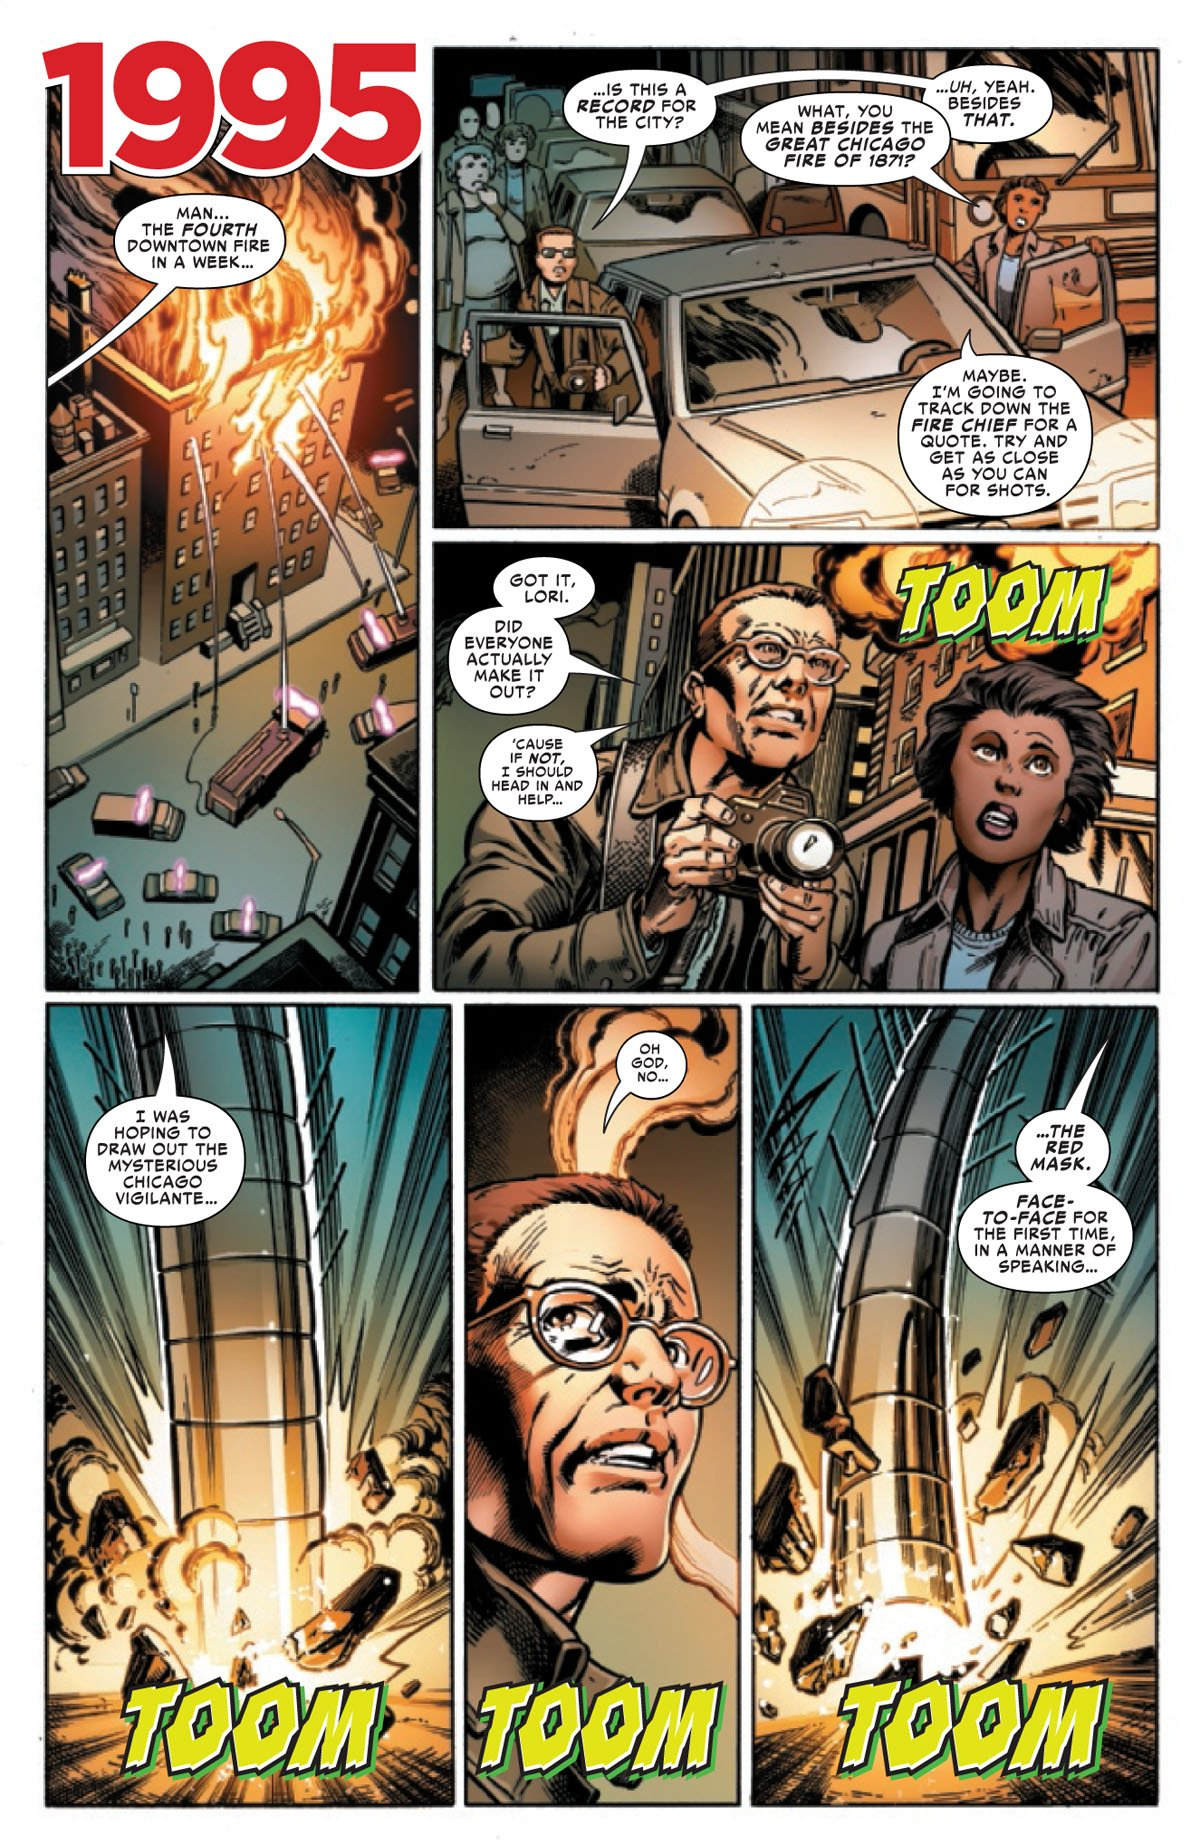 Spider-Man: Life Story #4 page 1